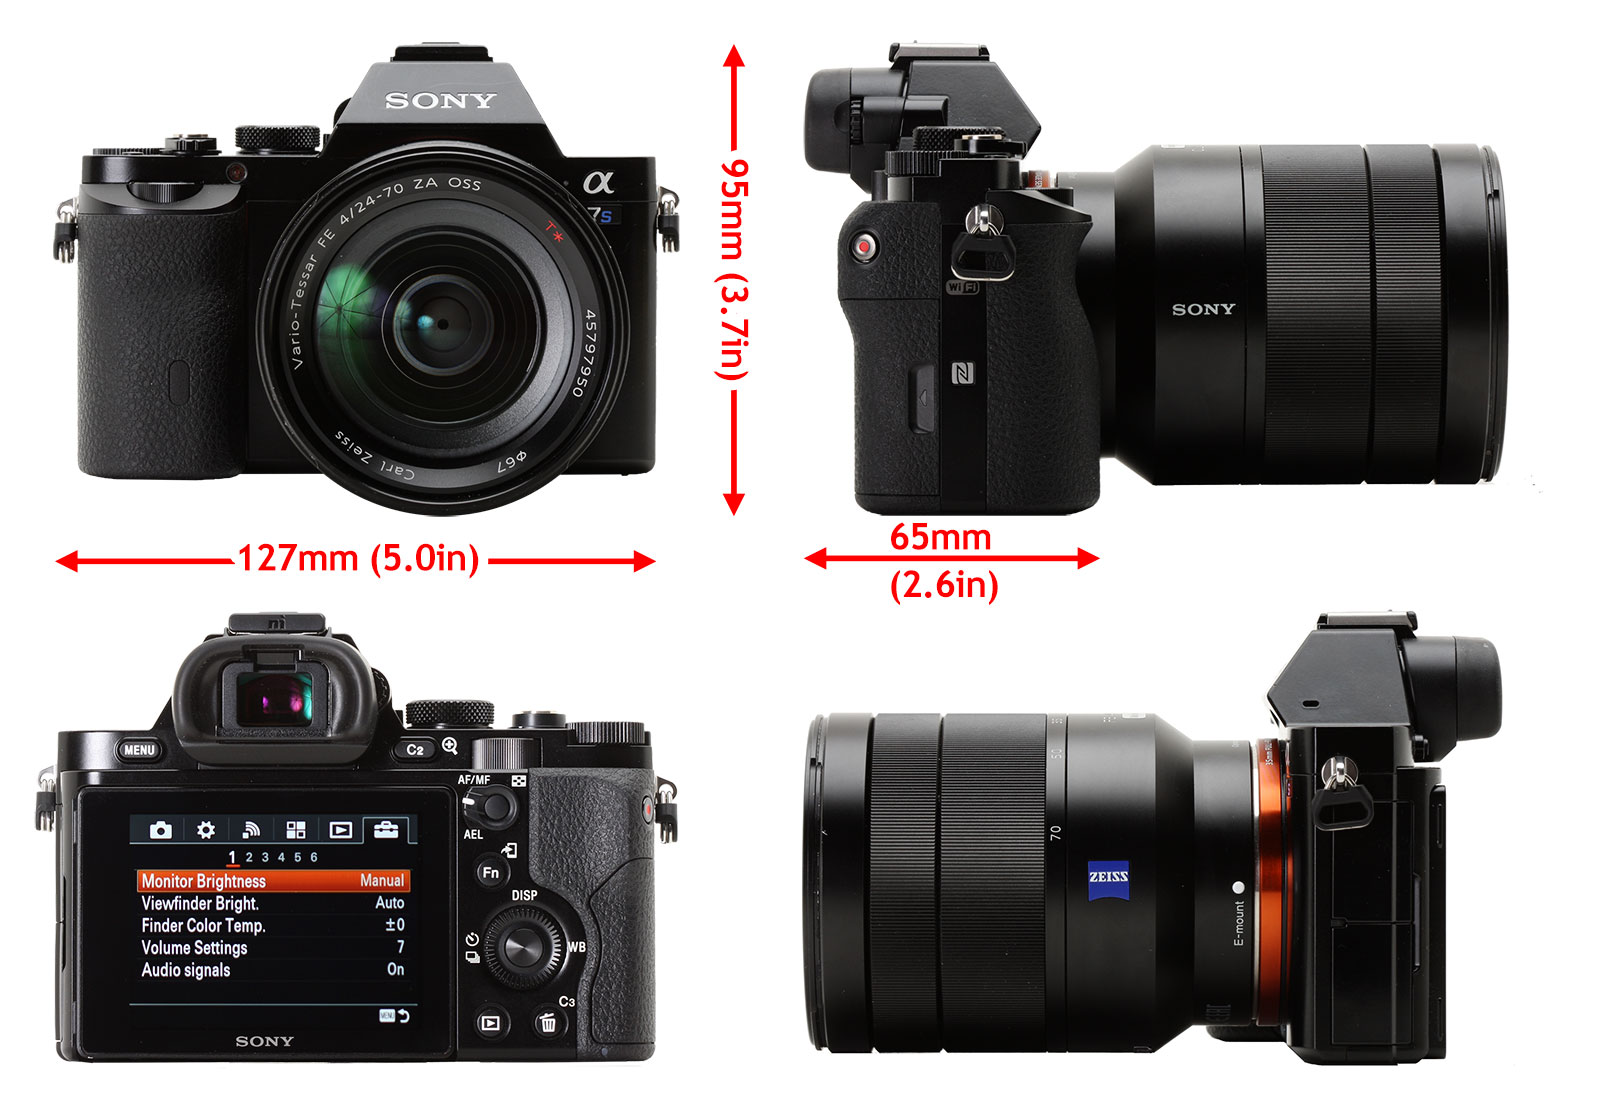 Sony Alpha 7s Review Digital Photography Flex Flexy Flexyble Canon Aperture 18 55 Is The A7s Controls Buttons Dials And Menus Are Identical To Those Found On A7 A7r In Short Reasonably Laid Out